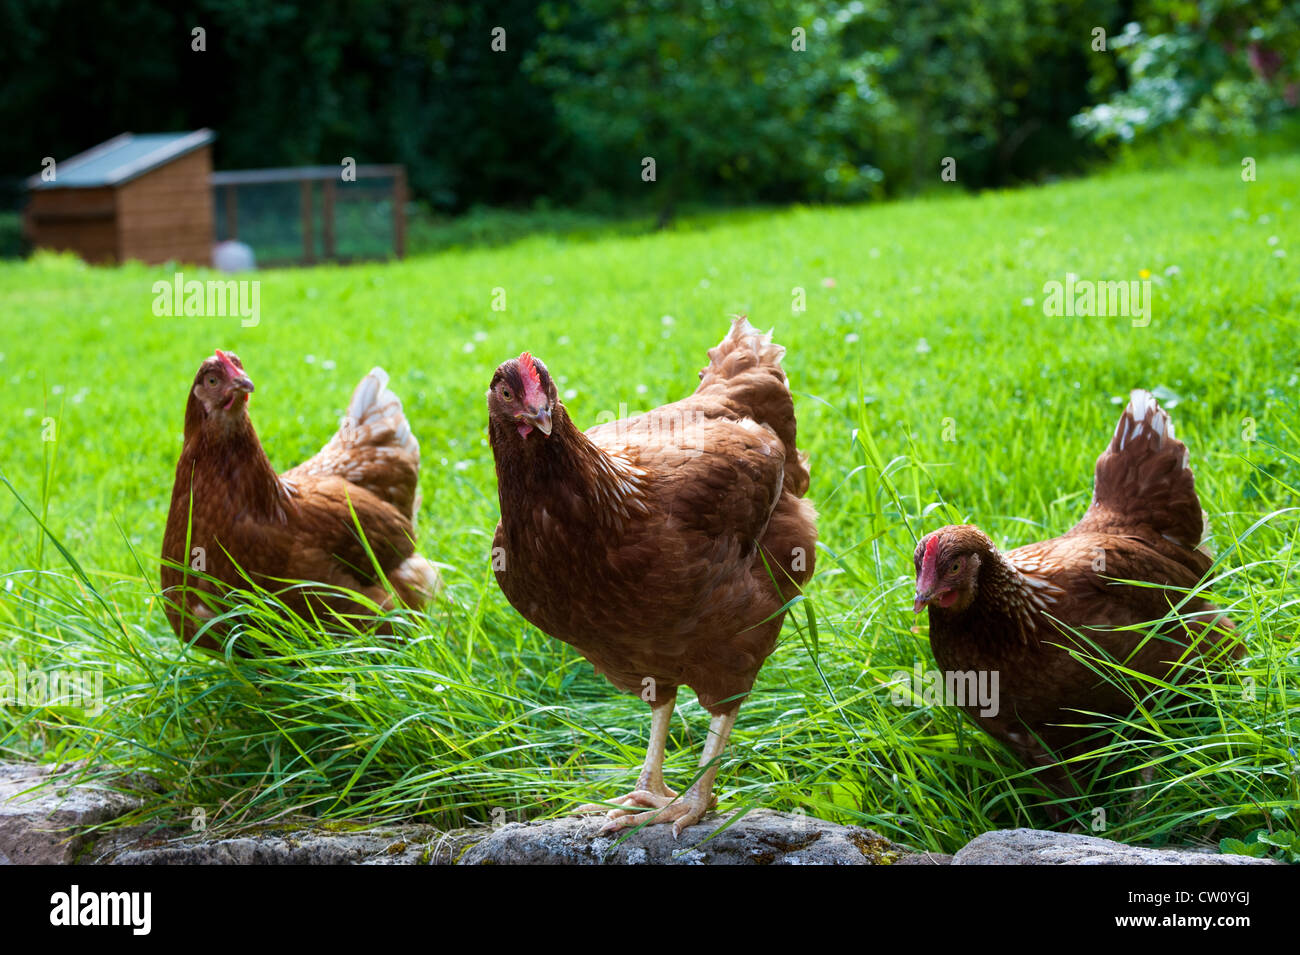 Chickens in a Shropshire garden, England - Stock Image